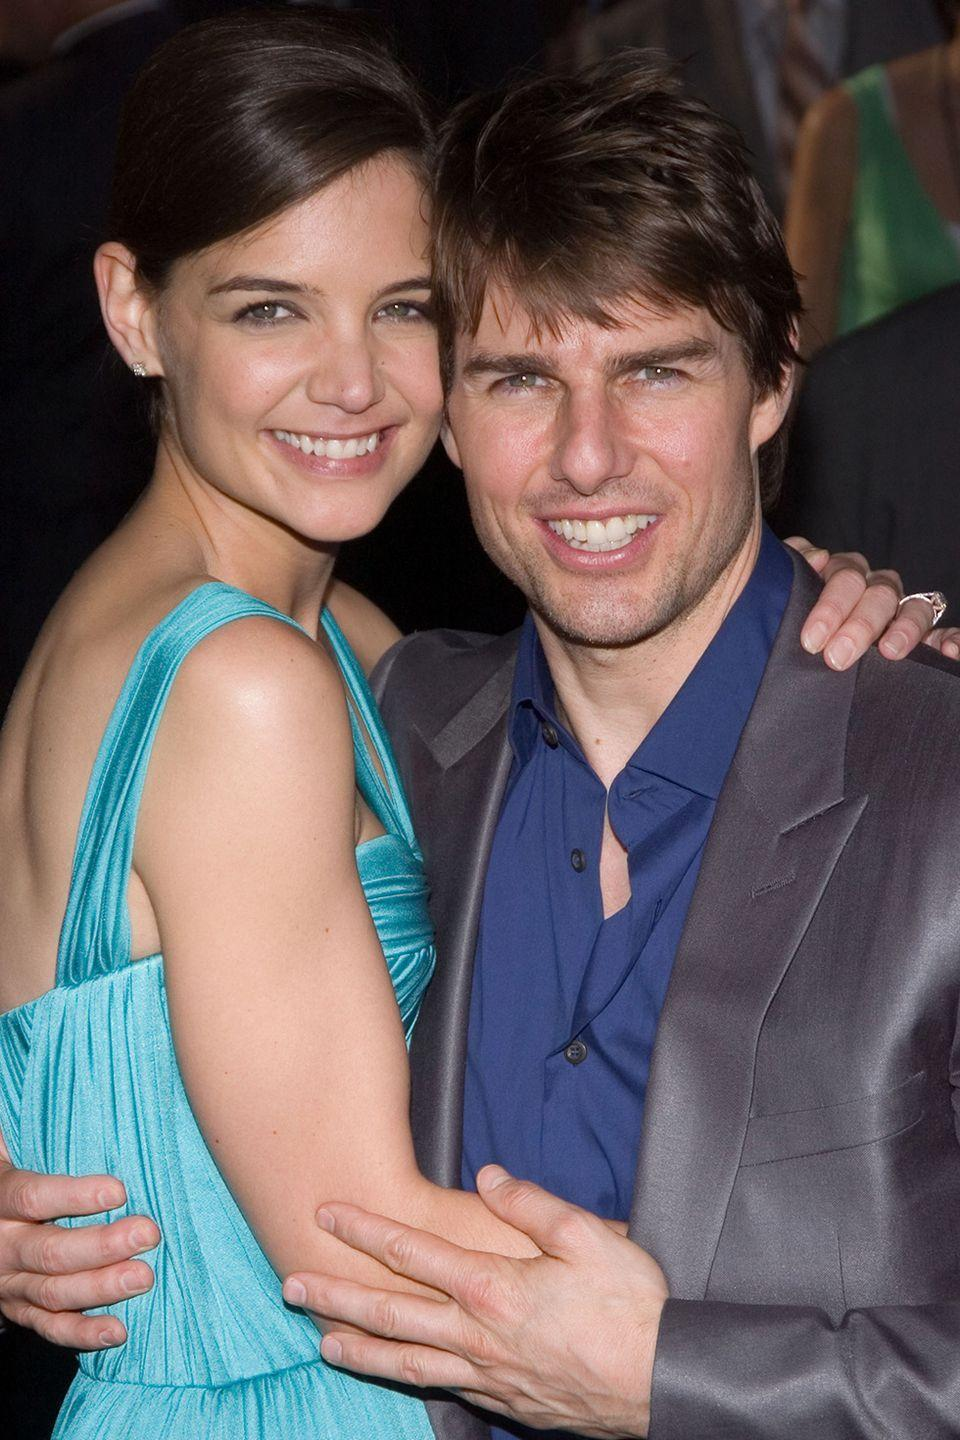 "<p>The infamous couch jumper popped the question to Katie on top of the Eiffel Tower in 2005 (très romantique!) eight weeks after they first met, according to <a class=""link rapid-noclick-resp"" href=""https://www.hollywoodreporter.com/news/tom-cruise-katie-holmes-timeline-divorce-343591"" rel=""nofollow noopener"" target=""_blank"" data-ylk=""slk:The Hollywood Reporter""><em>The Hollywood Reporter</em></a>. TomKat divorced in 2012.</p>"